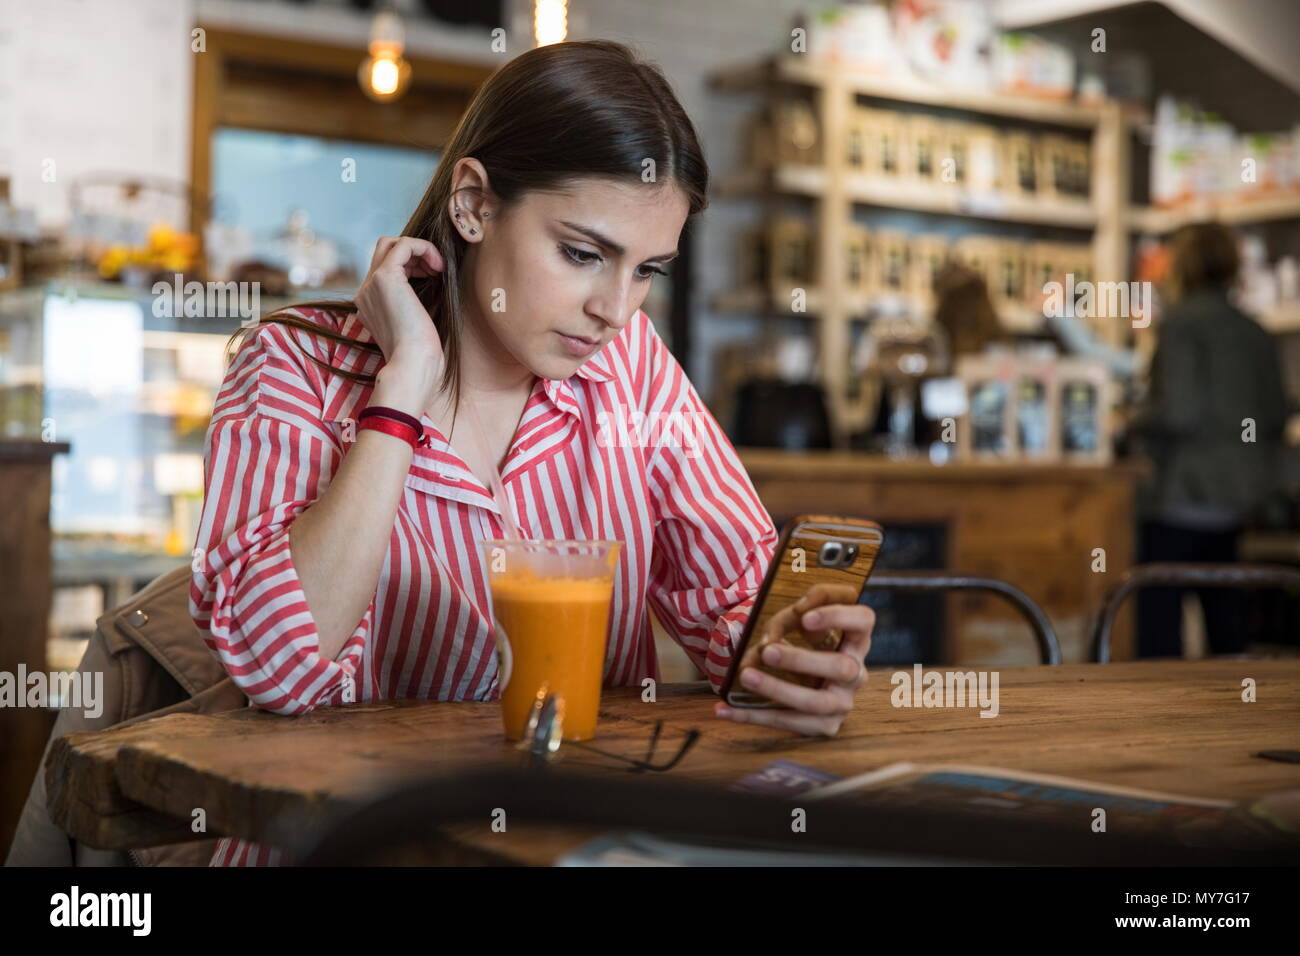 Young woman sitting in cafe, using smartphone, smoothie on table in front of her Stock Photo